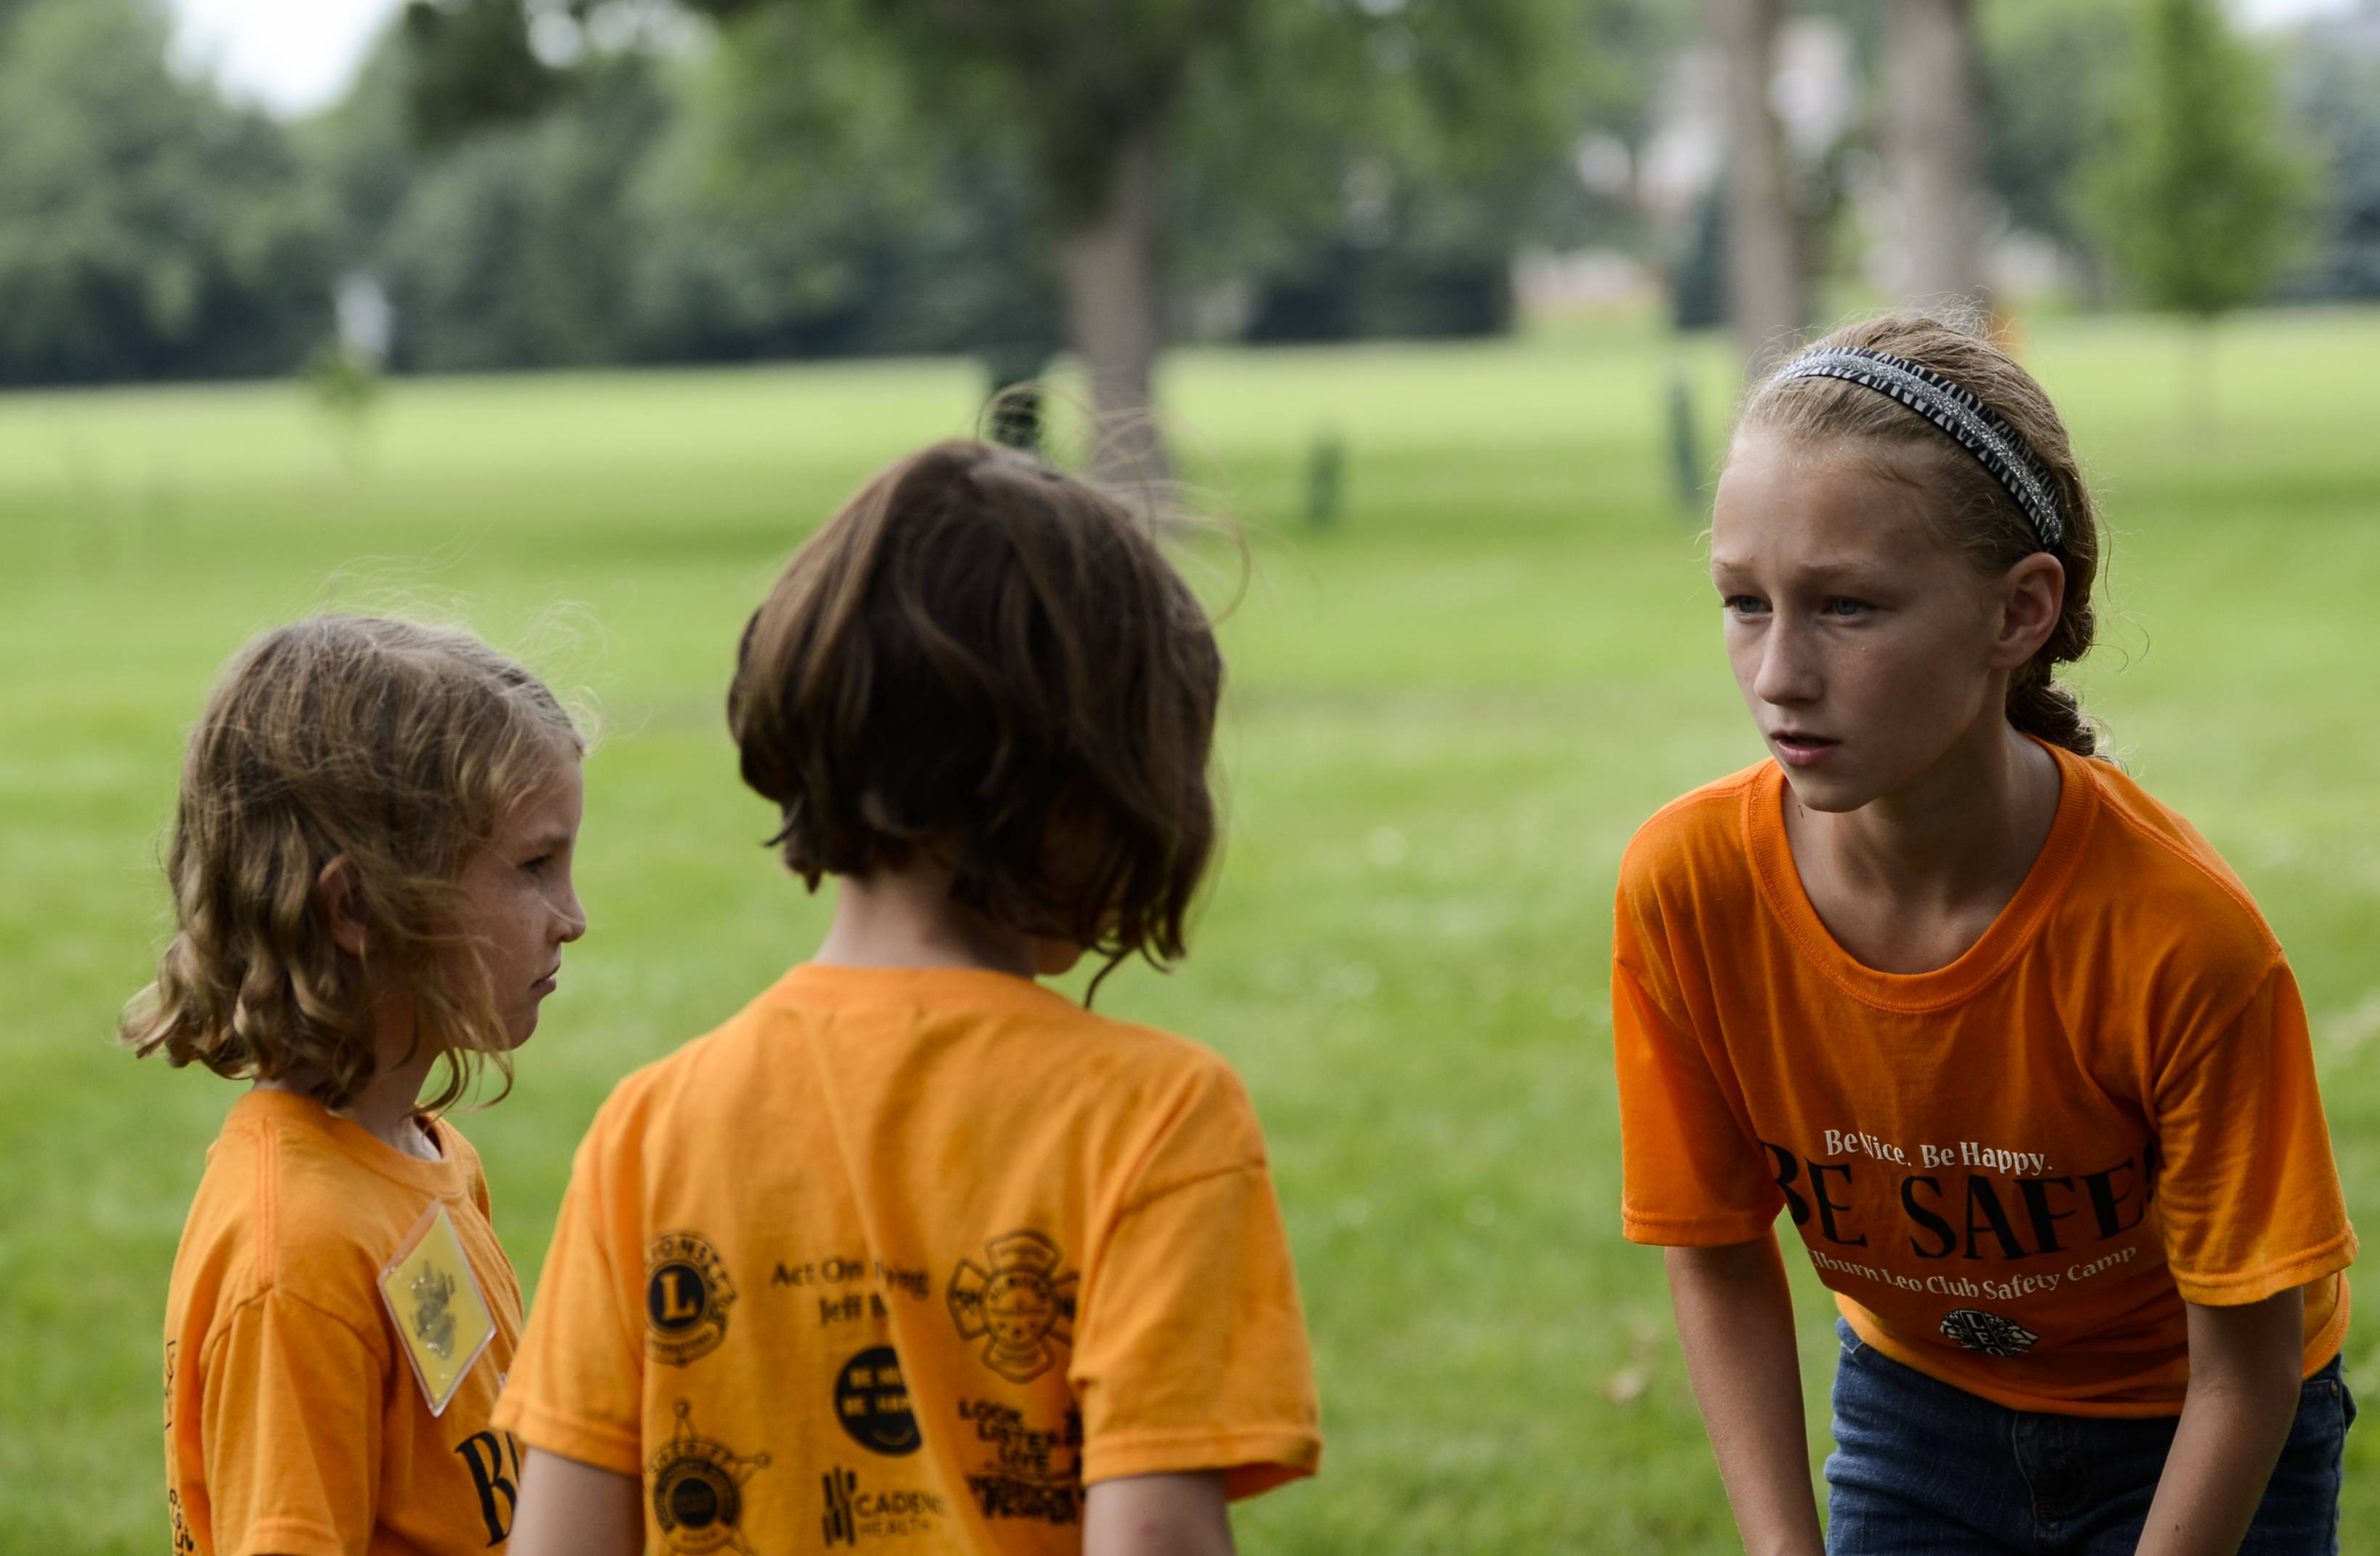 Aubrey Broz, 11, of Elburn, helps two younger girls, Delia and Lucinda Connelly, both 7, of Elburn during the Safety camp at Elburn Lions Club on Tuesday. Broz started the camp after hearing about the death of 13-year-old Caity Phillips last year. The two-day camp was free for kids ages 7-10 and taught them about how to stay safe in a variety of situations.